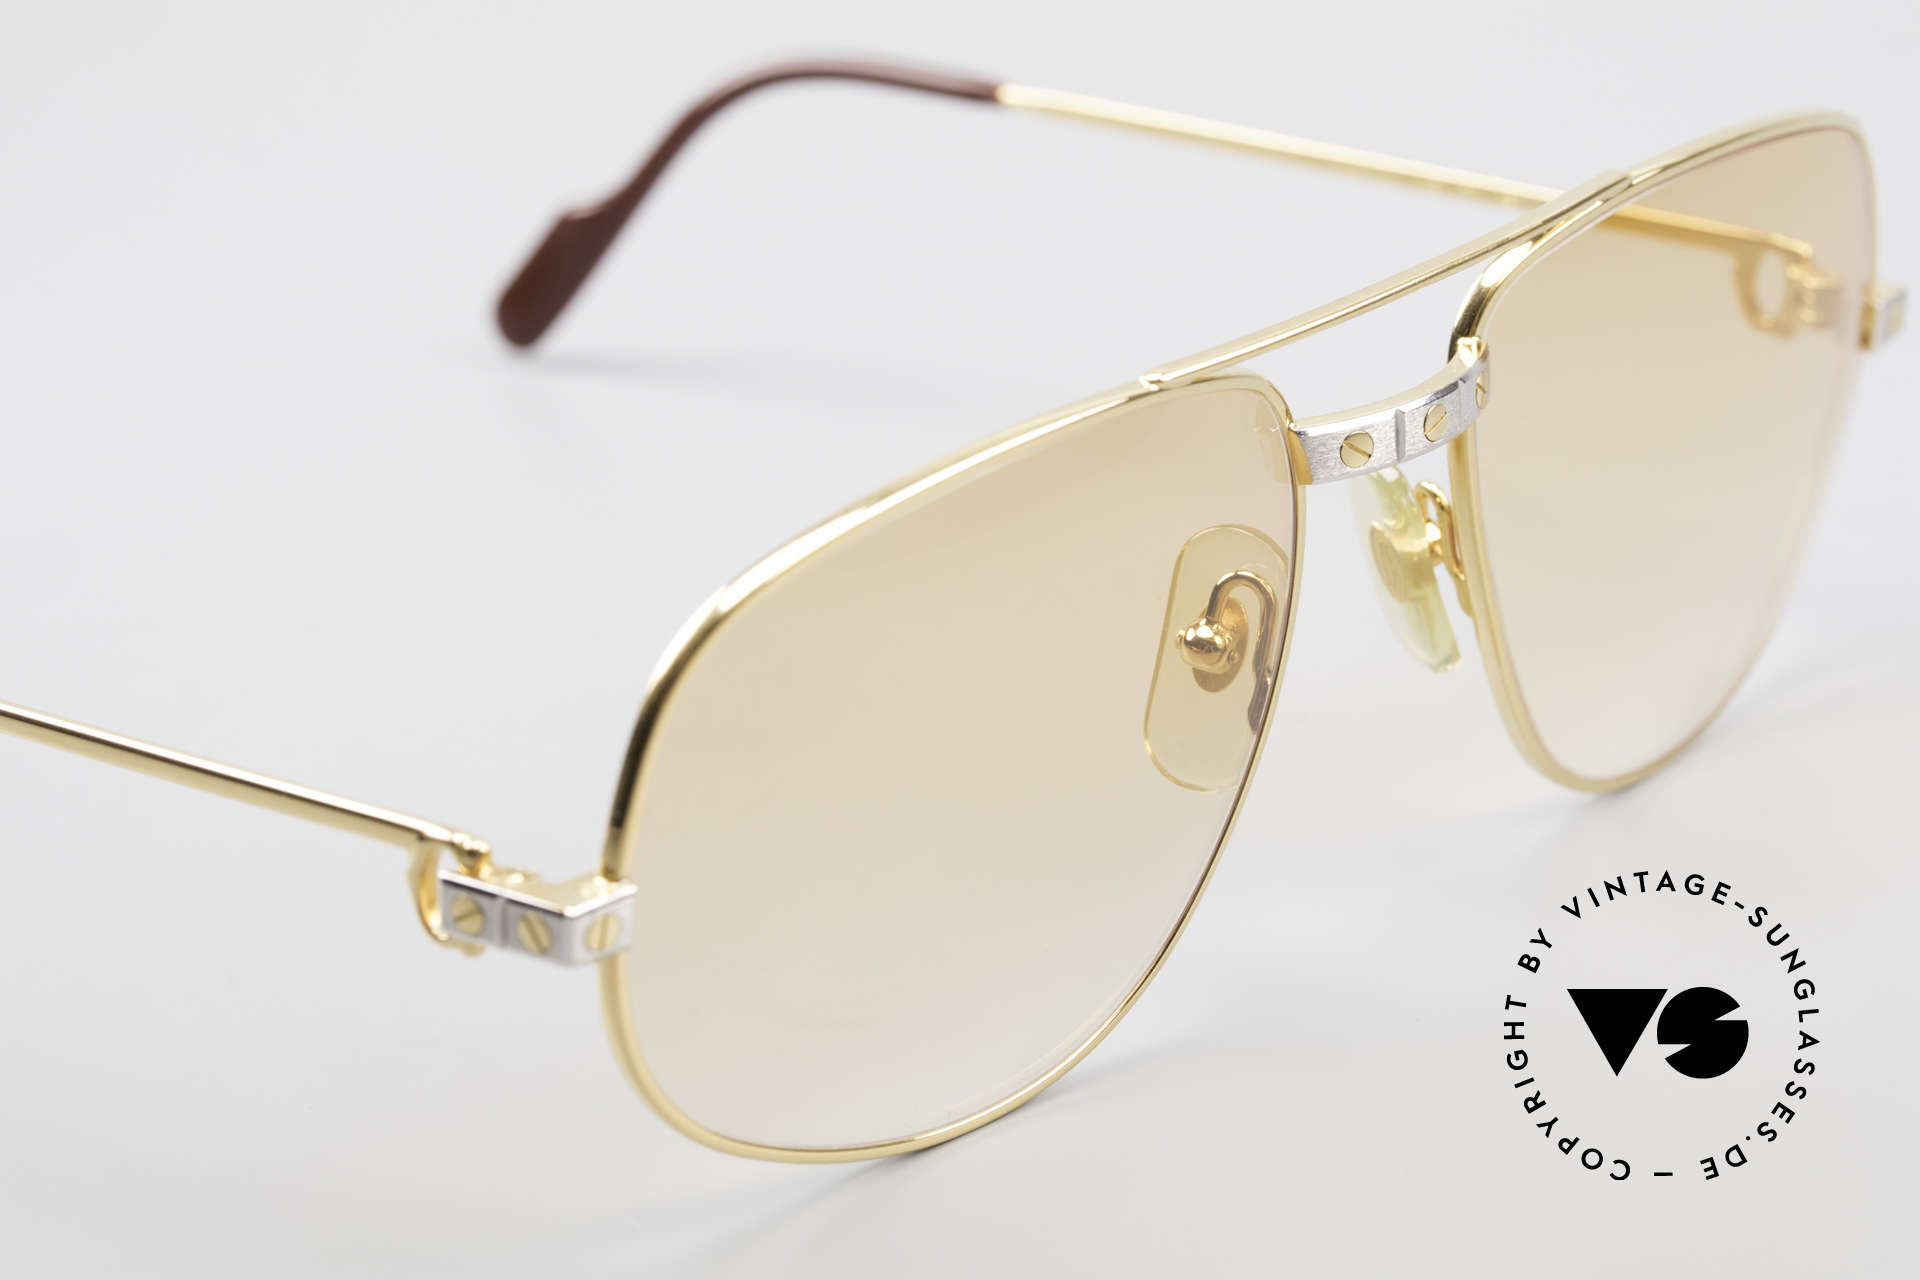 Cartier Romance Santos - L Luxury Vintage Sunglasses, 2nd hand model, but in a mint condition (incl. GUCCI case), Made for Men